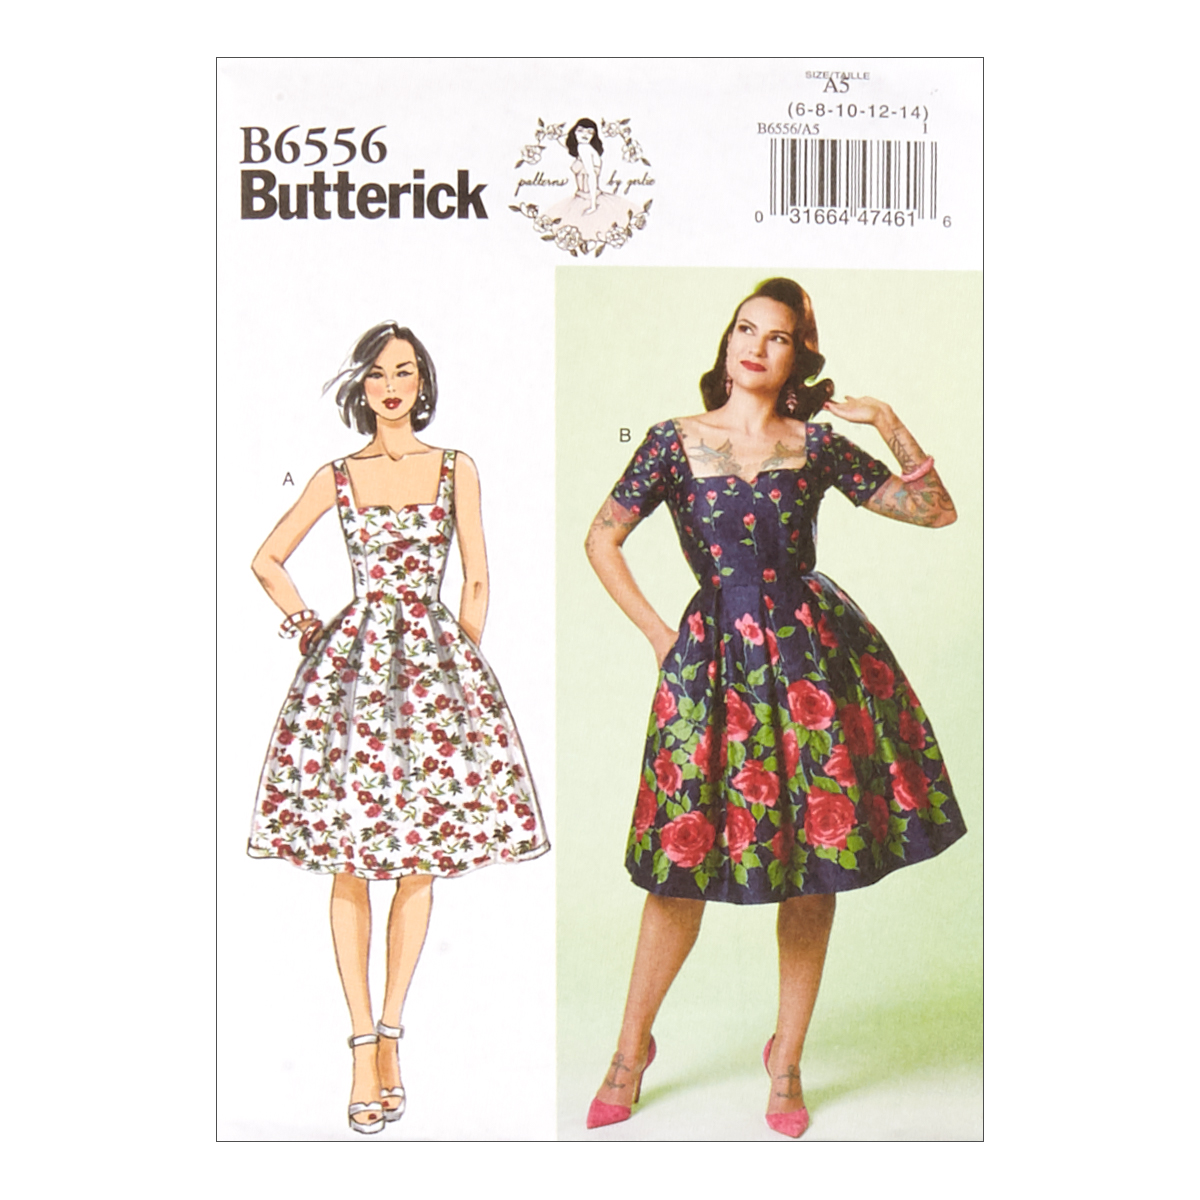 1950s Sewing Patterns | Dresses, Skirts, Tops, Mens Butterick B6556 Patterns by Gertie Misses Dress E5 Sizes 14-22 $11.97 AT vintagedancer.com